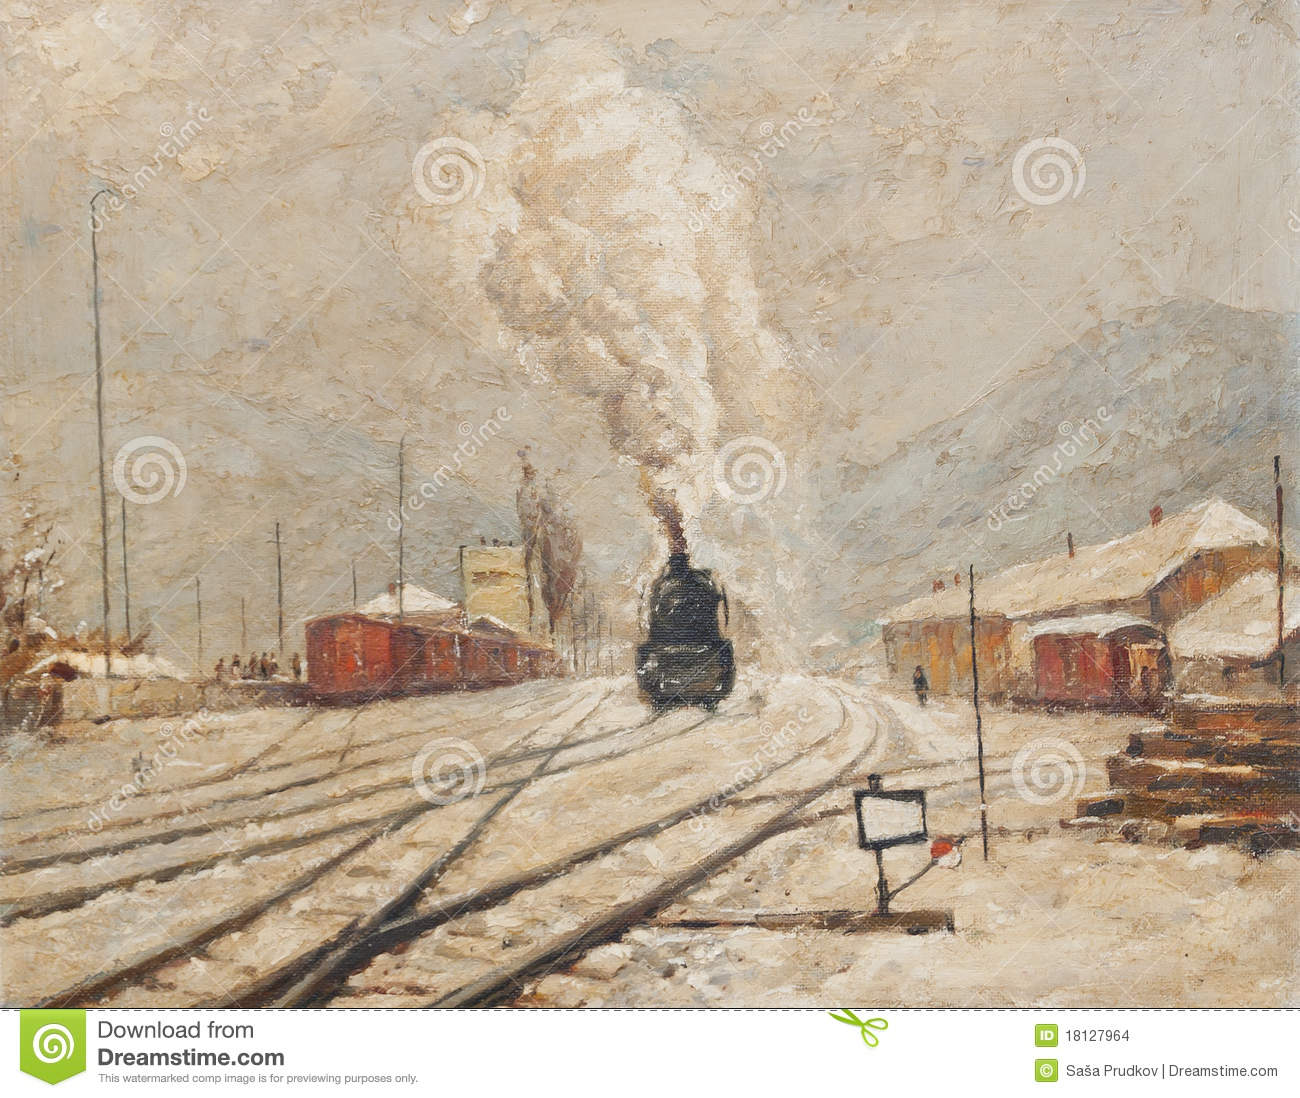 Oil Painting Representing Old Train Station Stock